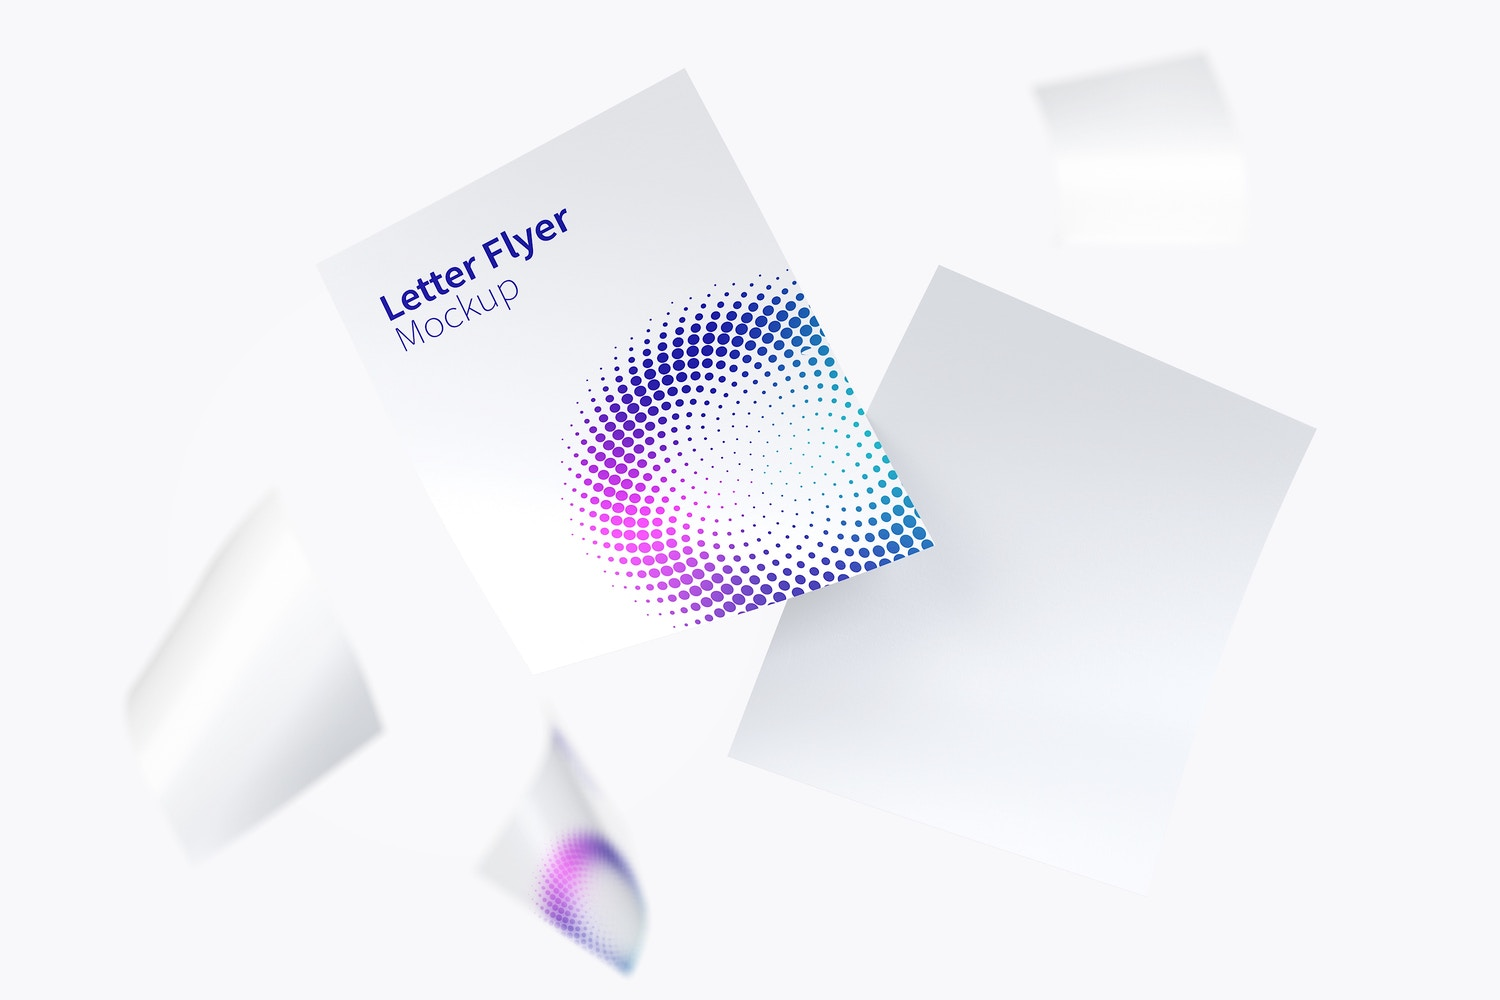 Letter Flyer Mockup 01 by Original Mockups on Original Mockups